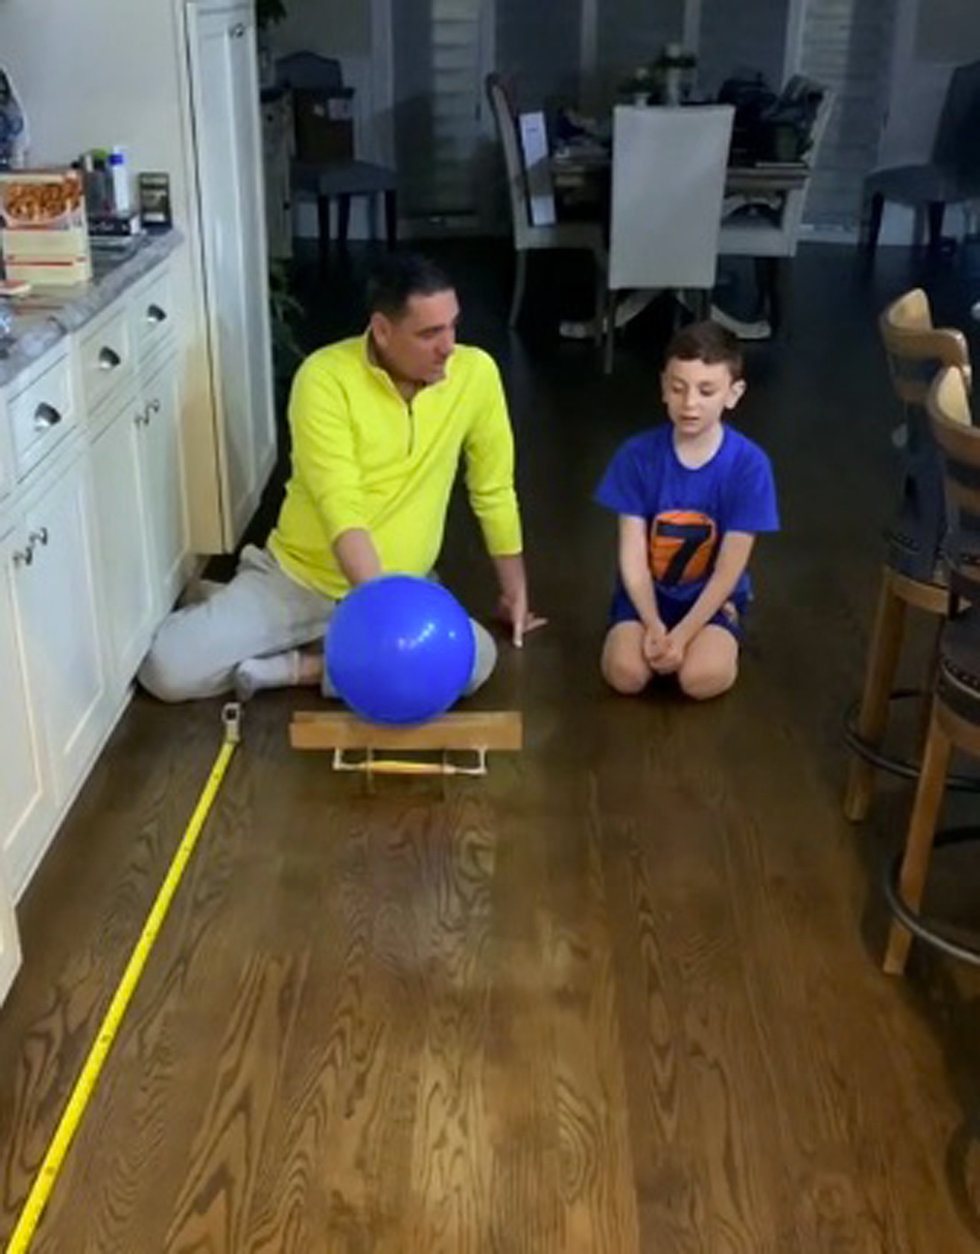 Using materials he had at home, Wantagh Elementary School third-grade student Giovanni Stornello created a balloon racer with the help of his father.